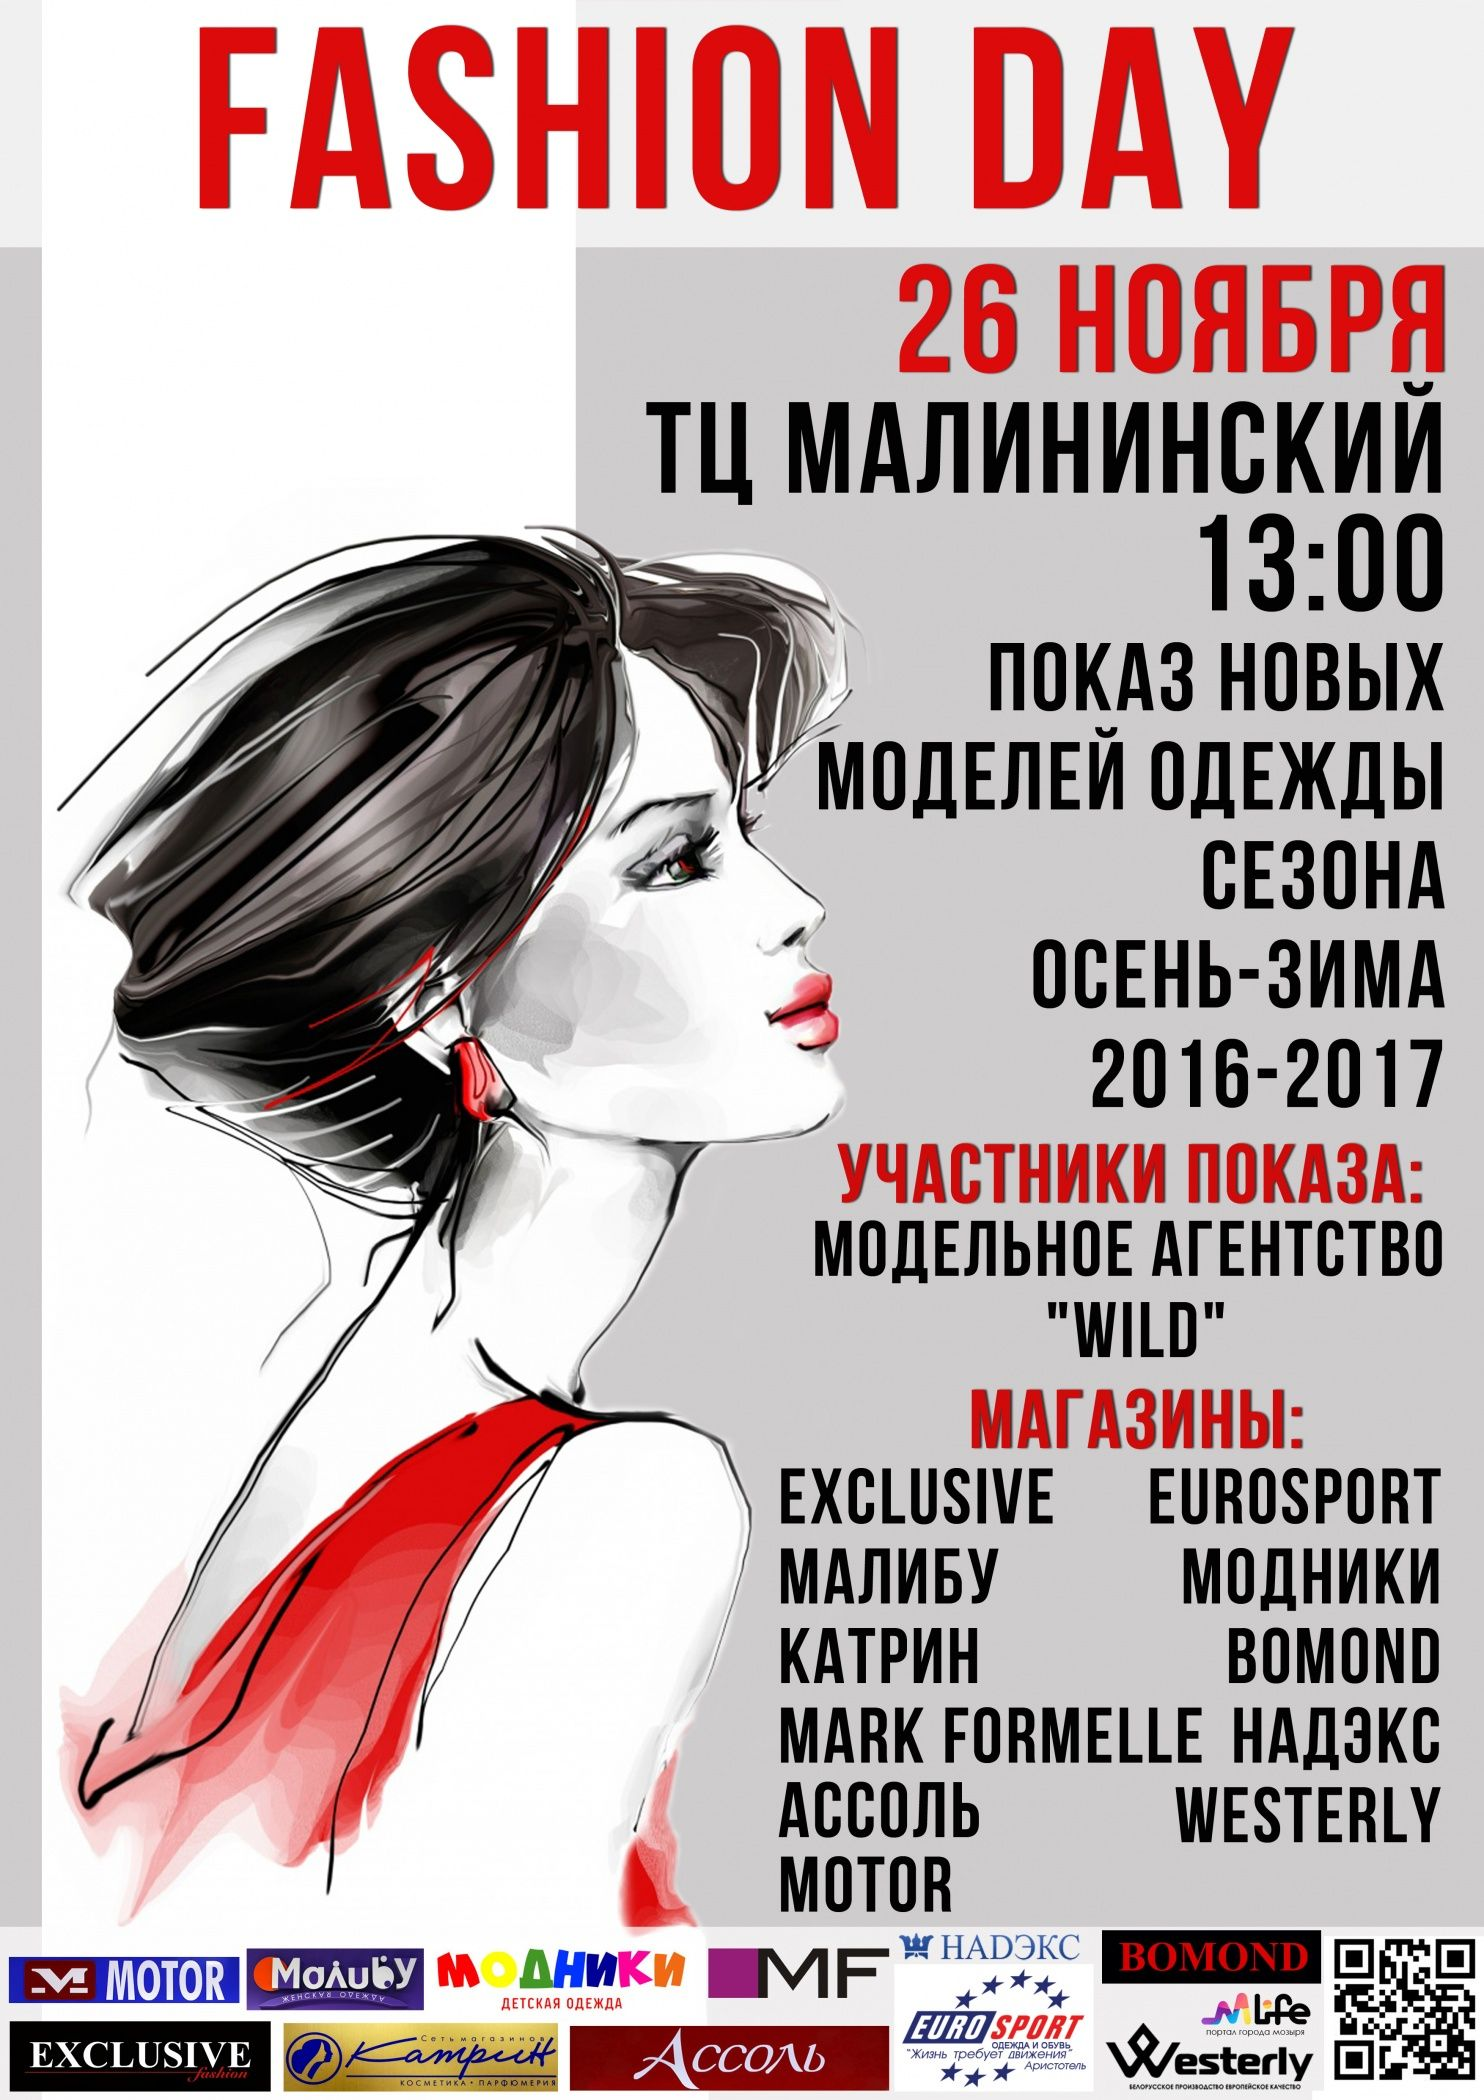 MOZYR FASHION DAY